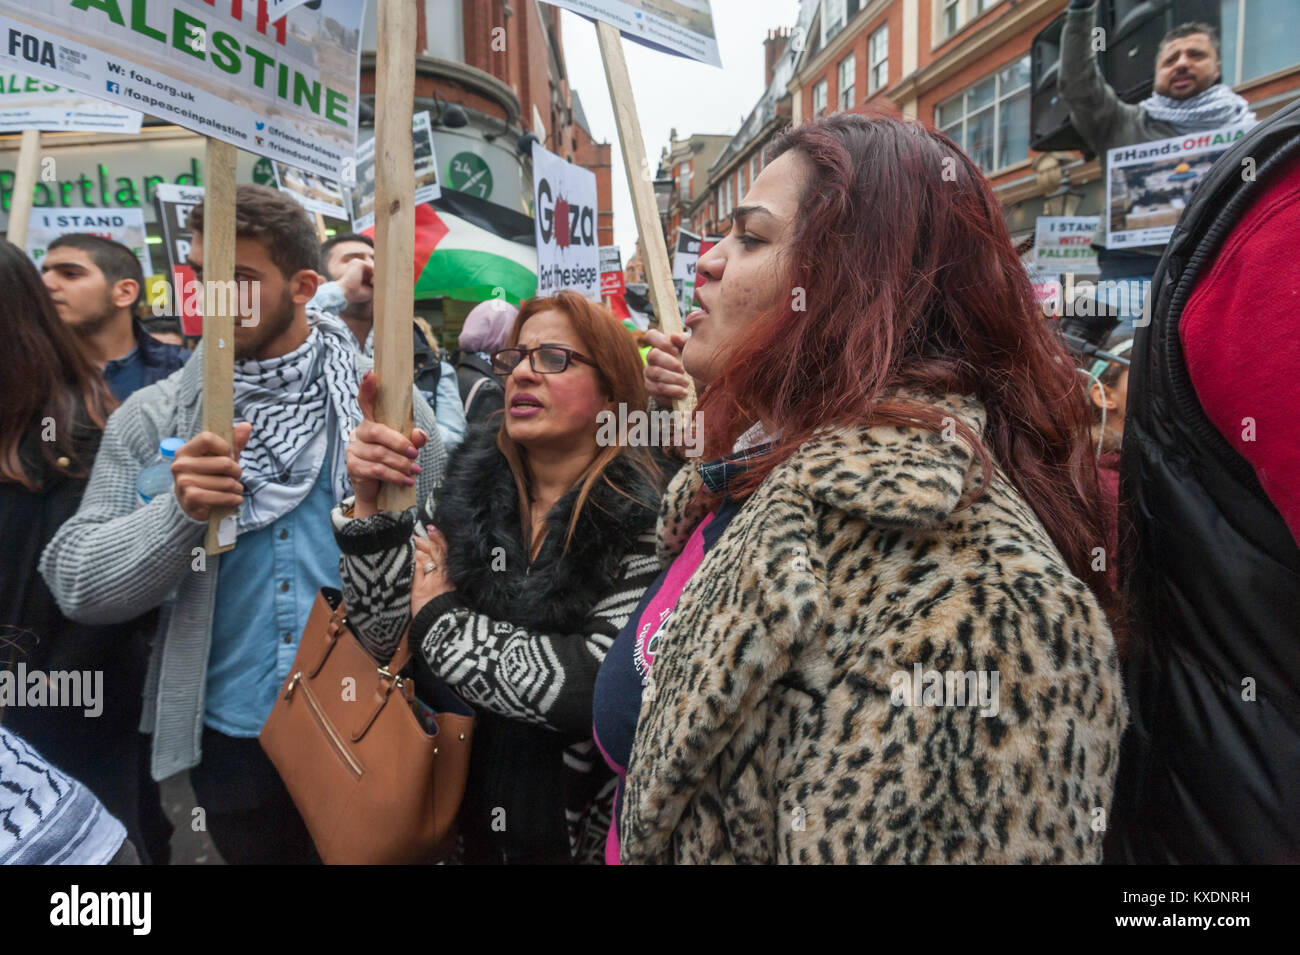 People with placards in the crowd at the protest at Israeli embassy in London calling for an end to Israeli occupation - Stock Image